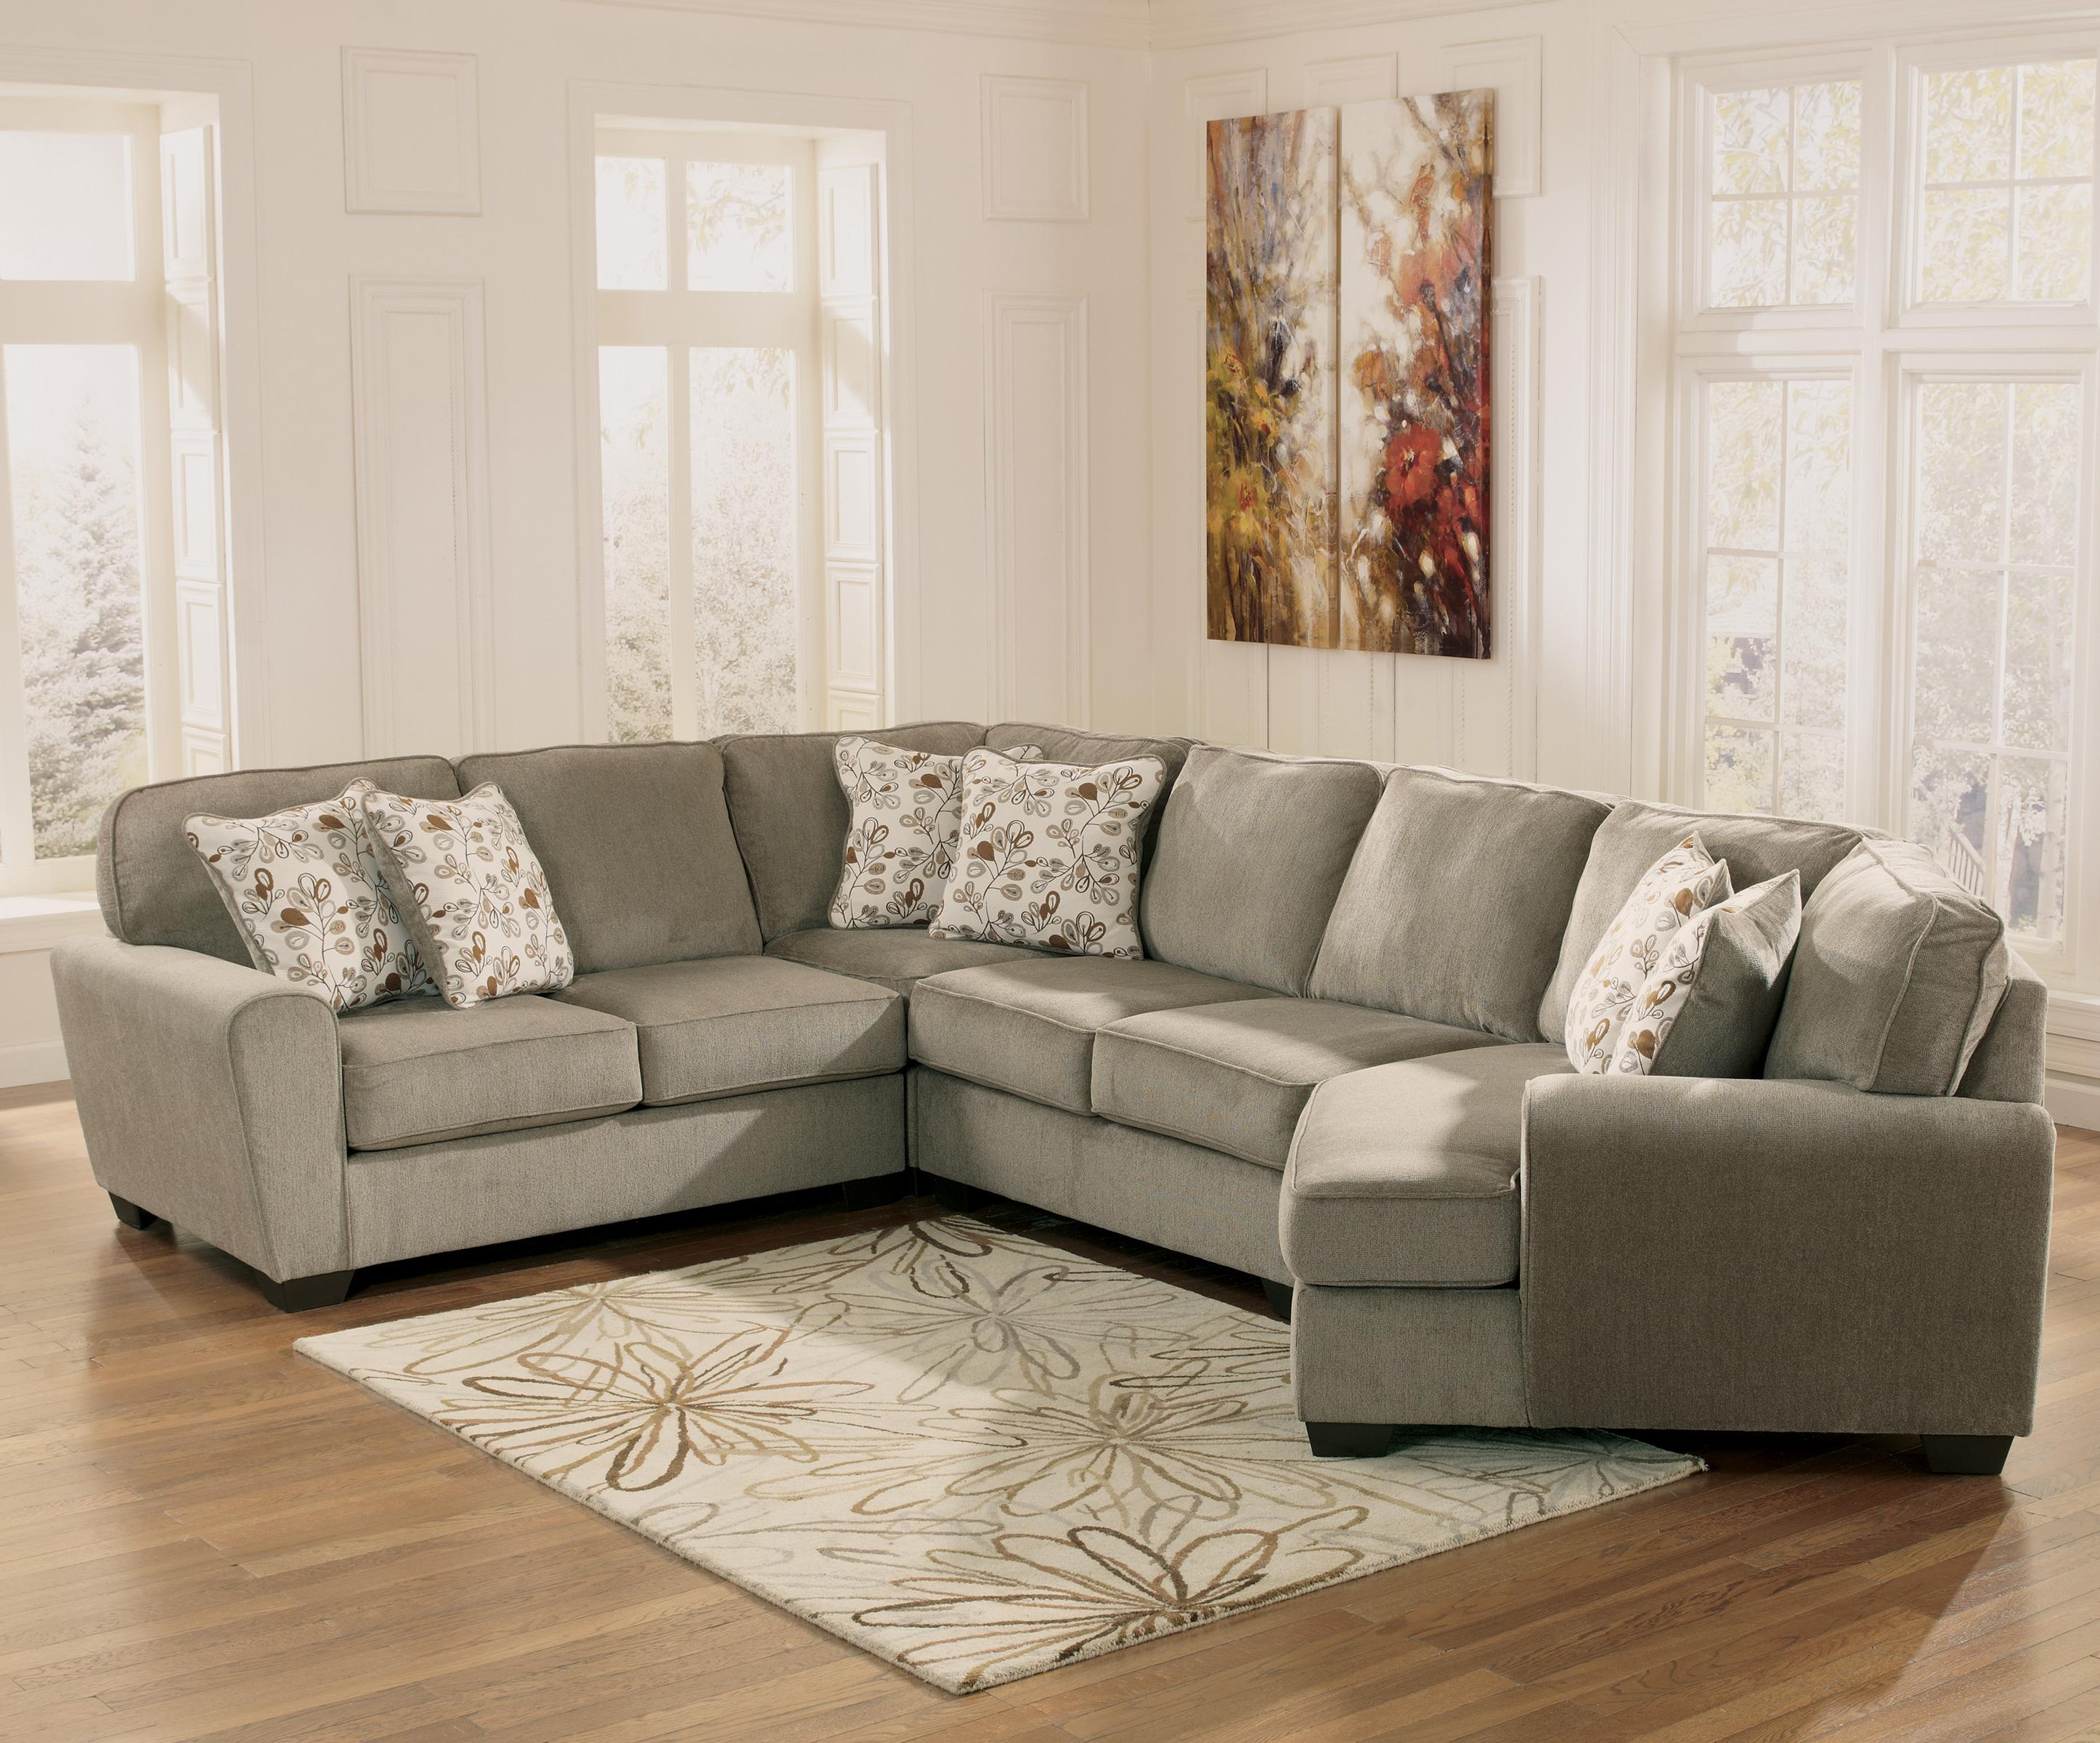 Rotmans Essentials U003cspanu003e100u003c/spanu003e Patina 4 Piece Small Sectional